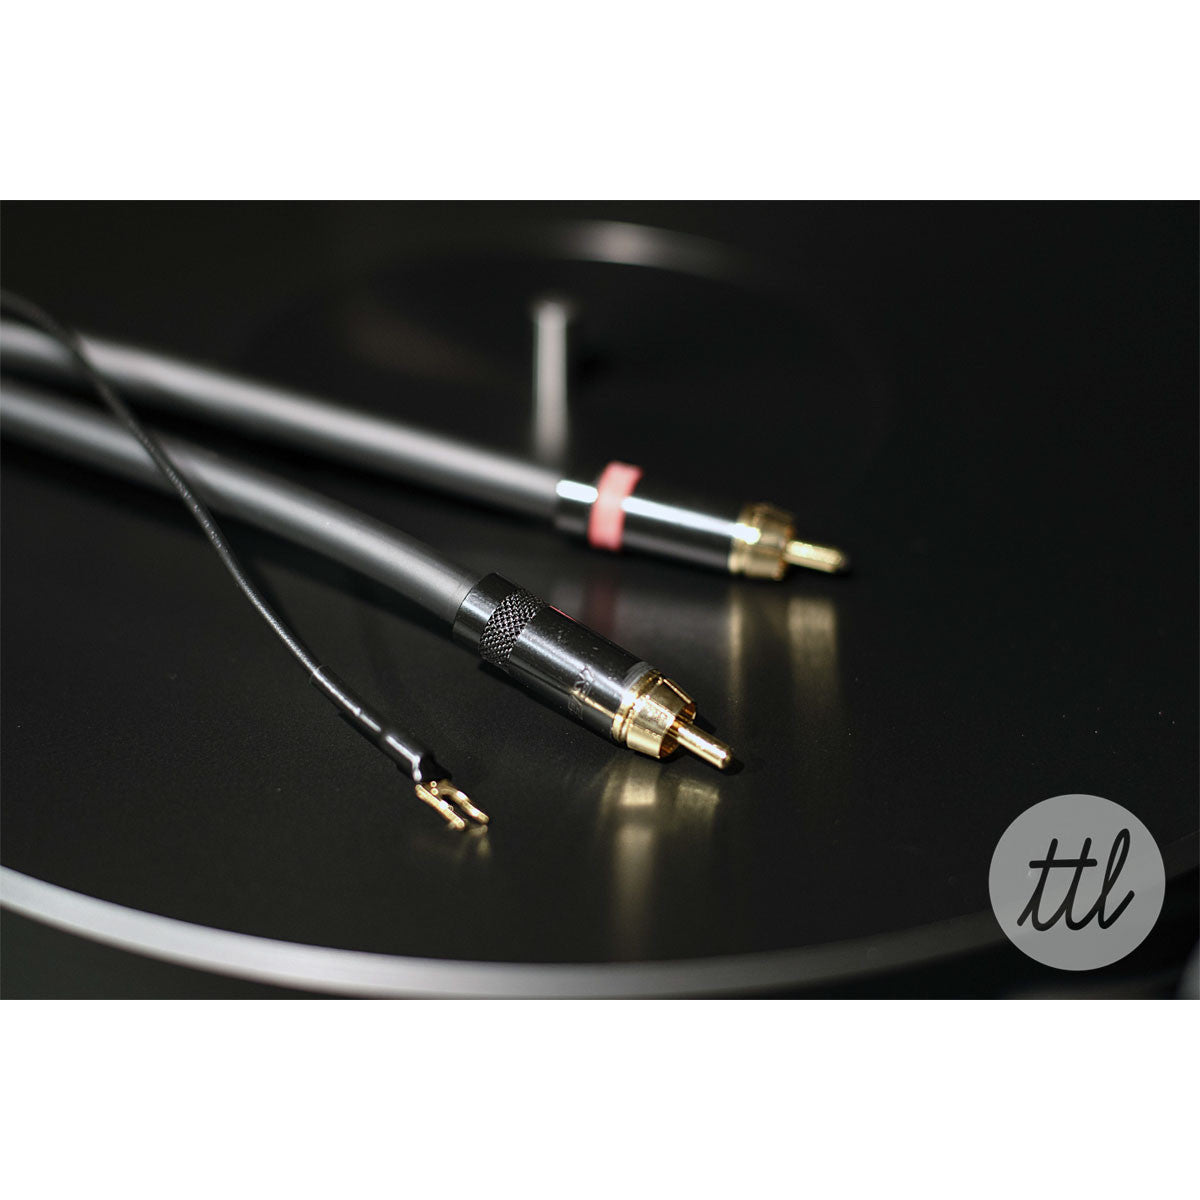 Clearaudio: Concept Turntable - Verify Tonearm / Concept MM Cartridge lifestyle cables